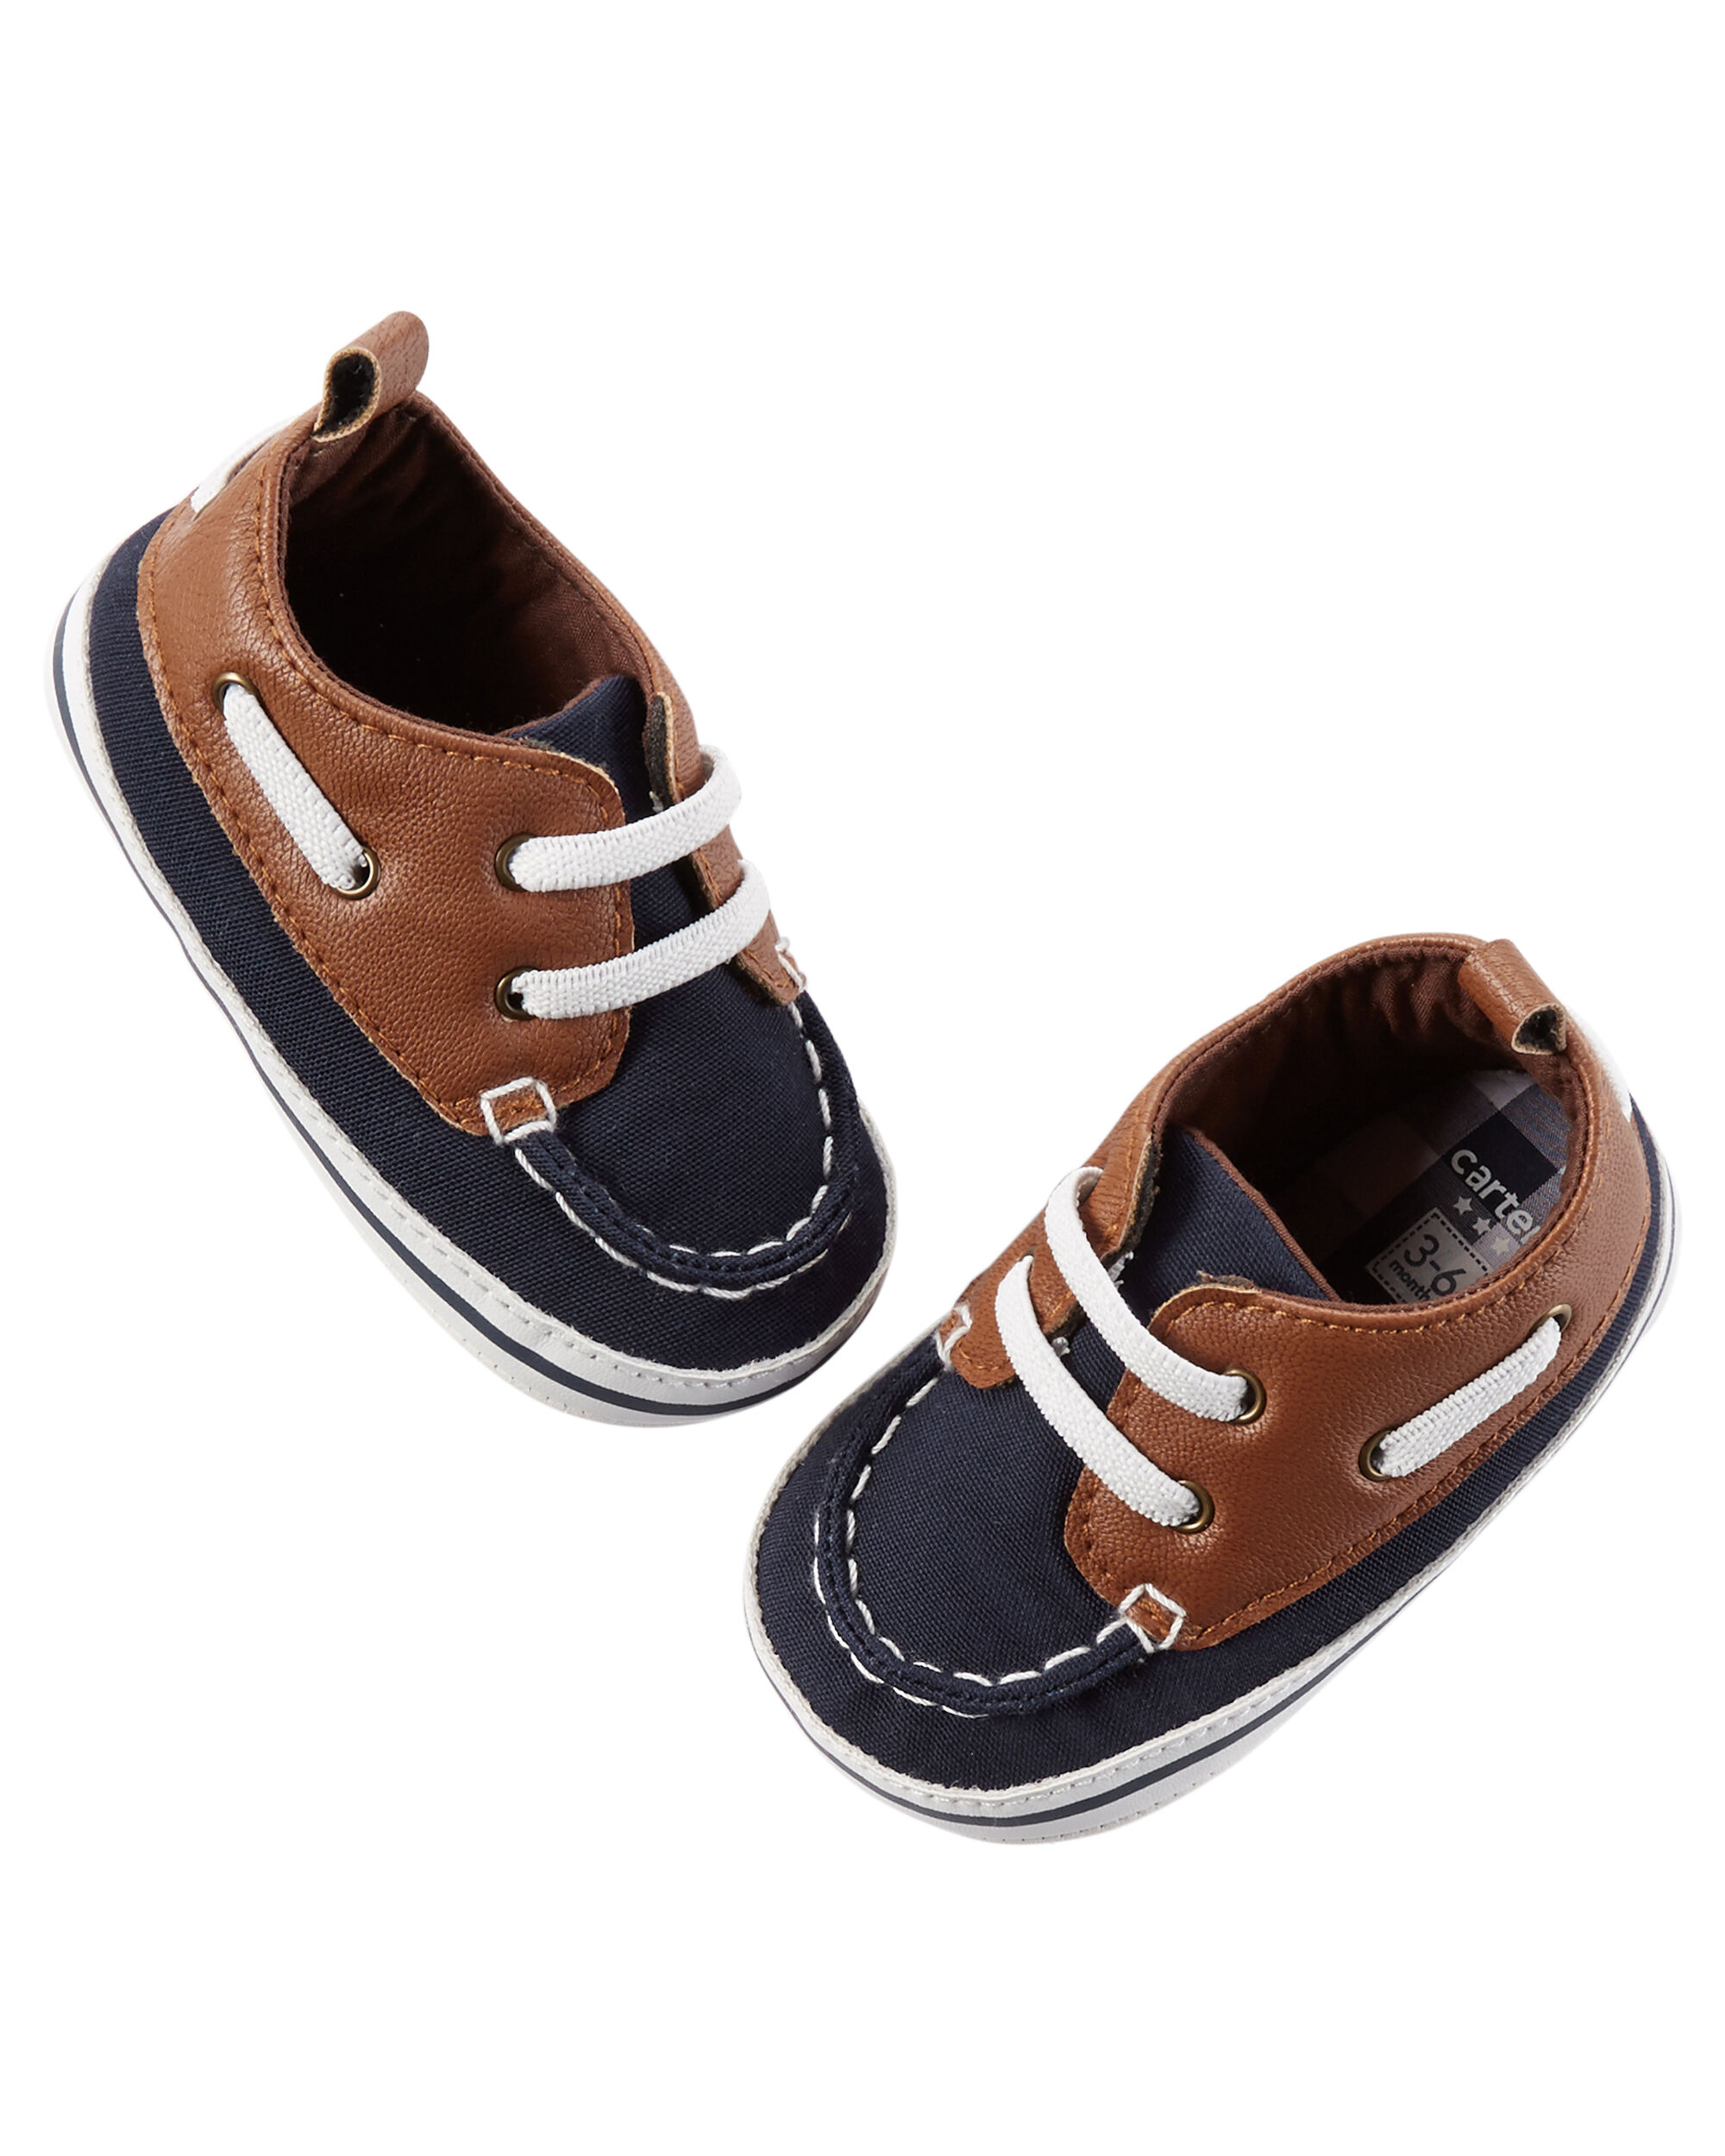 Baby Boat Shoes Newest and Cutest Baby Clothing Collection by Due